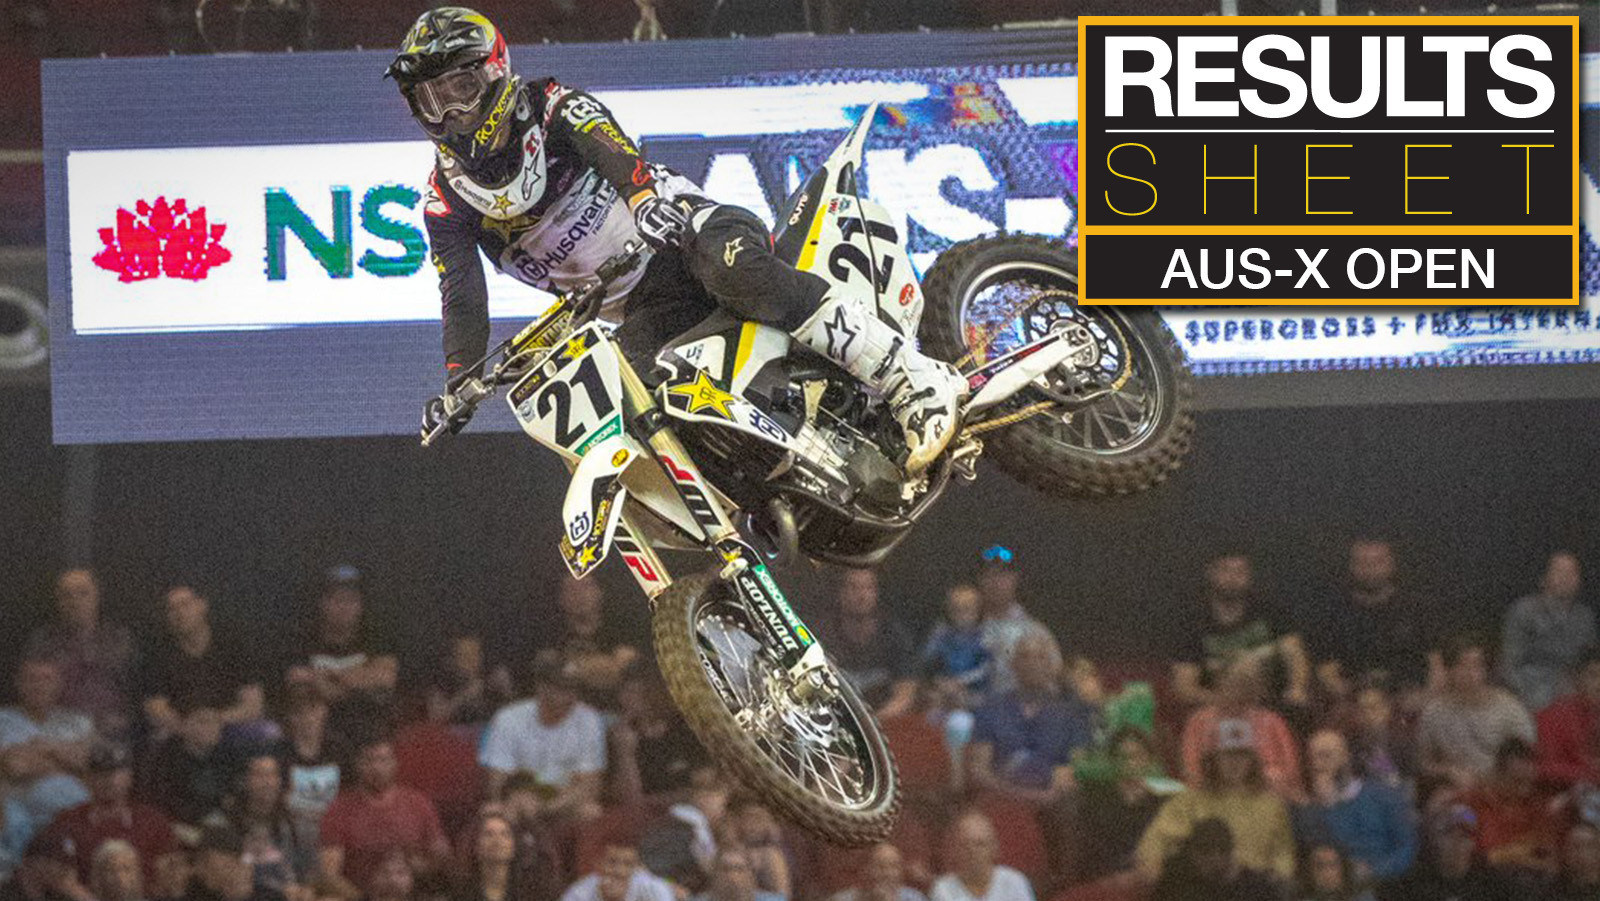 Results Sheet: 2018 AUS-X Open